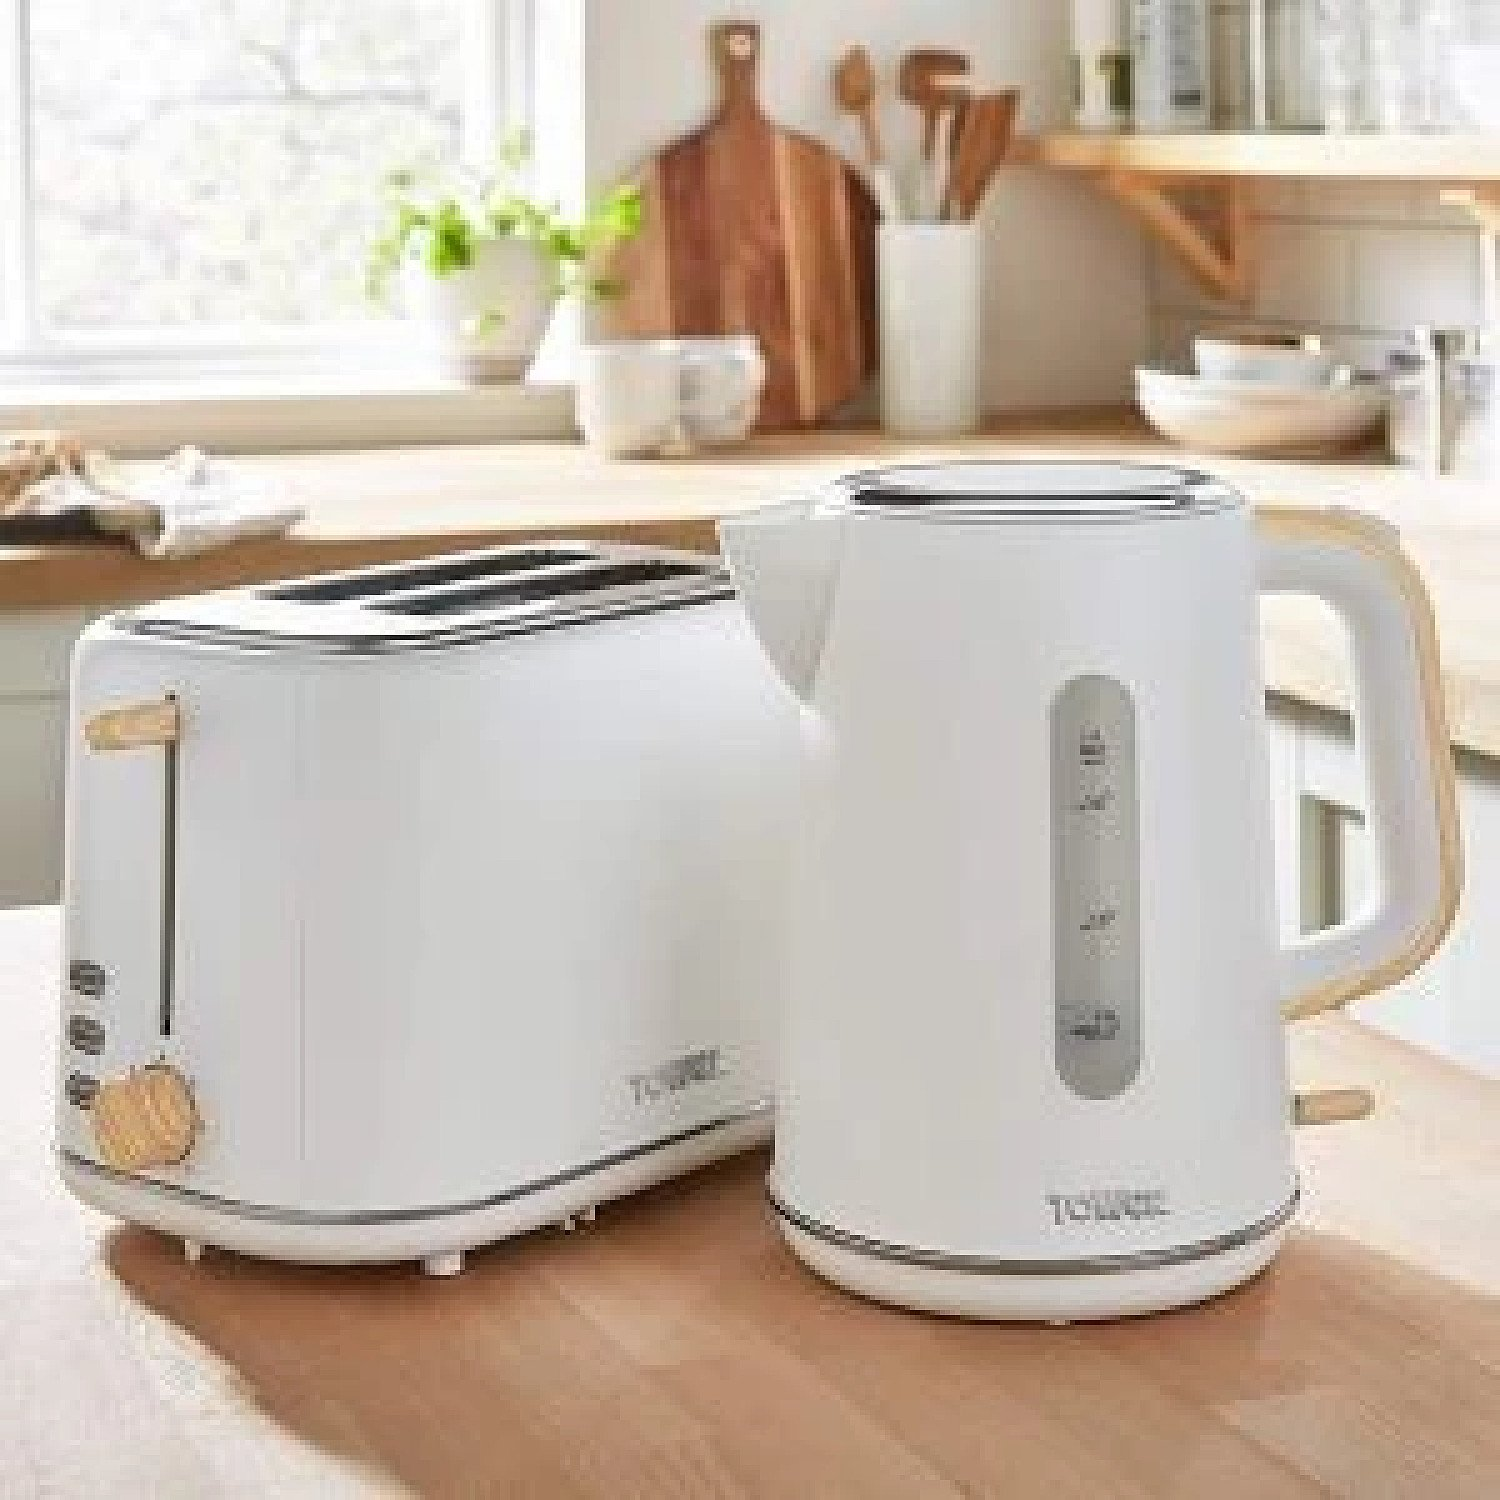 Tower Scandi Kettle & 2 Slice Toaster Breakfast Set in White & Wood Accents Free Postage